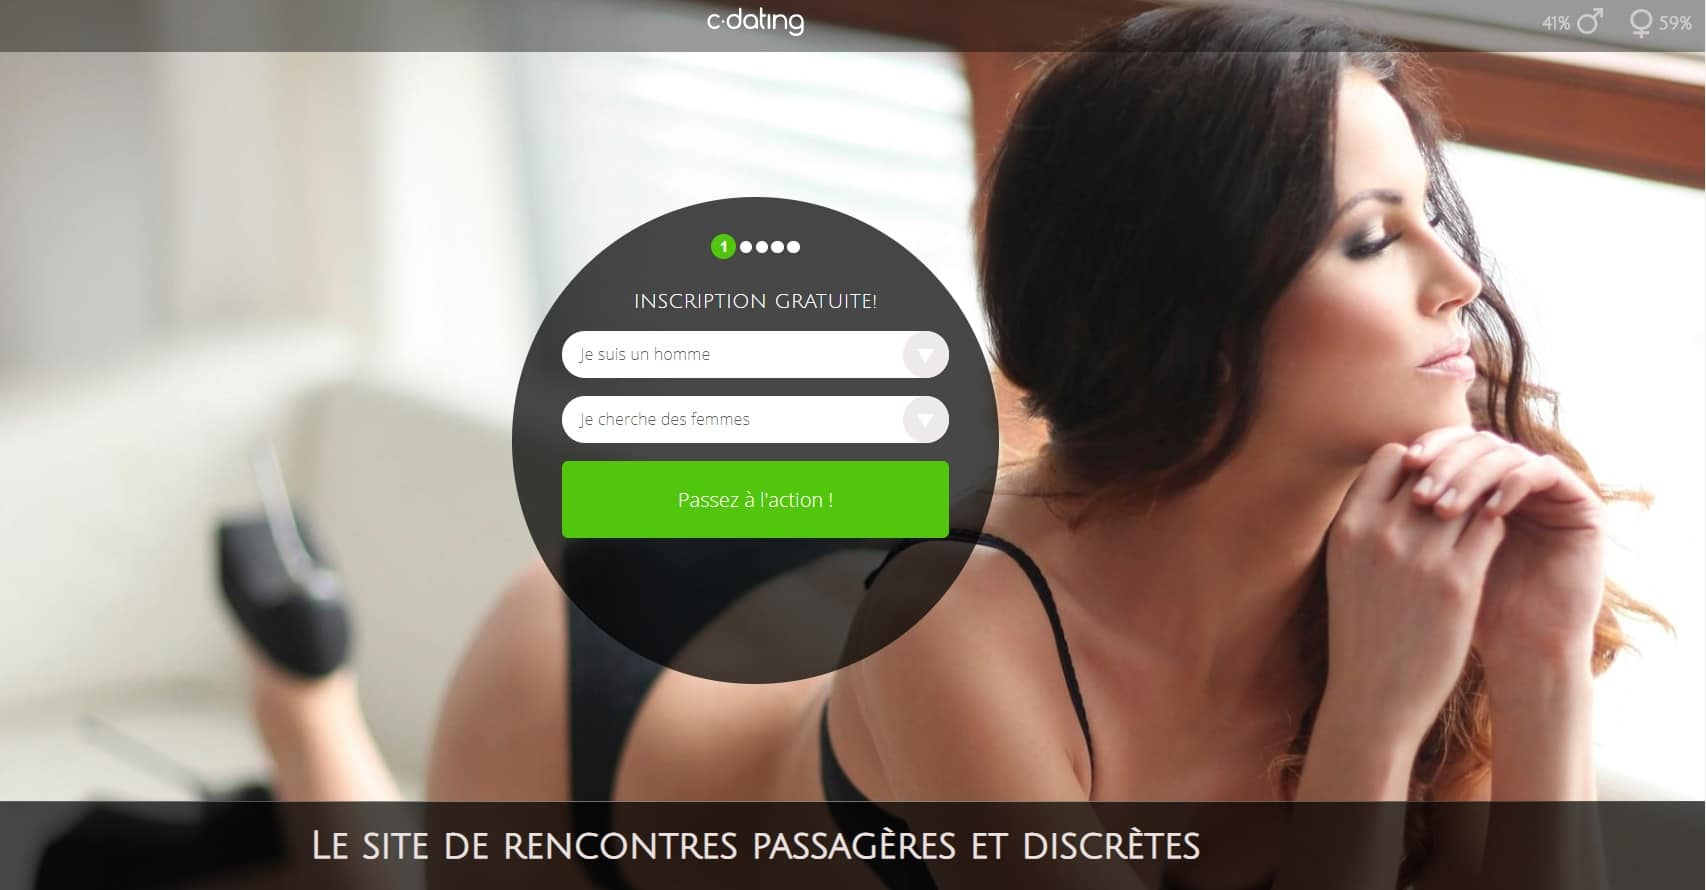 meilleurs sites de branchement occasionnel 2014